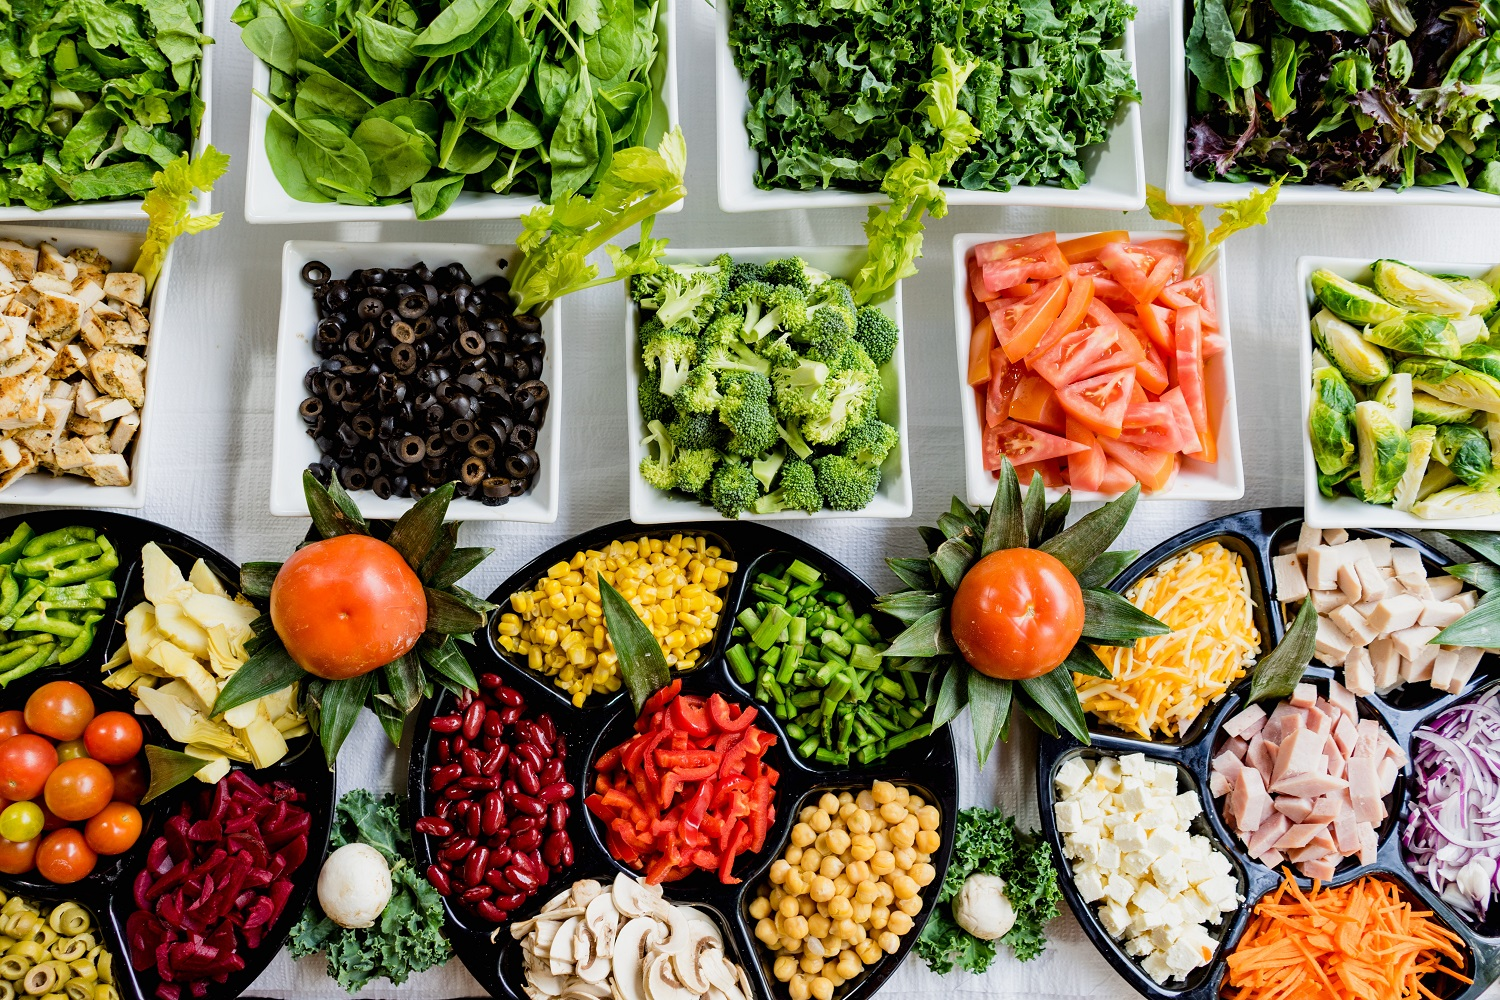 What to eat to prevent osteoporosis